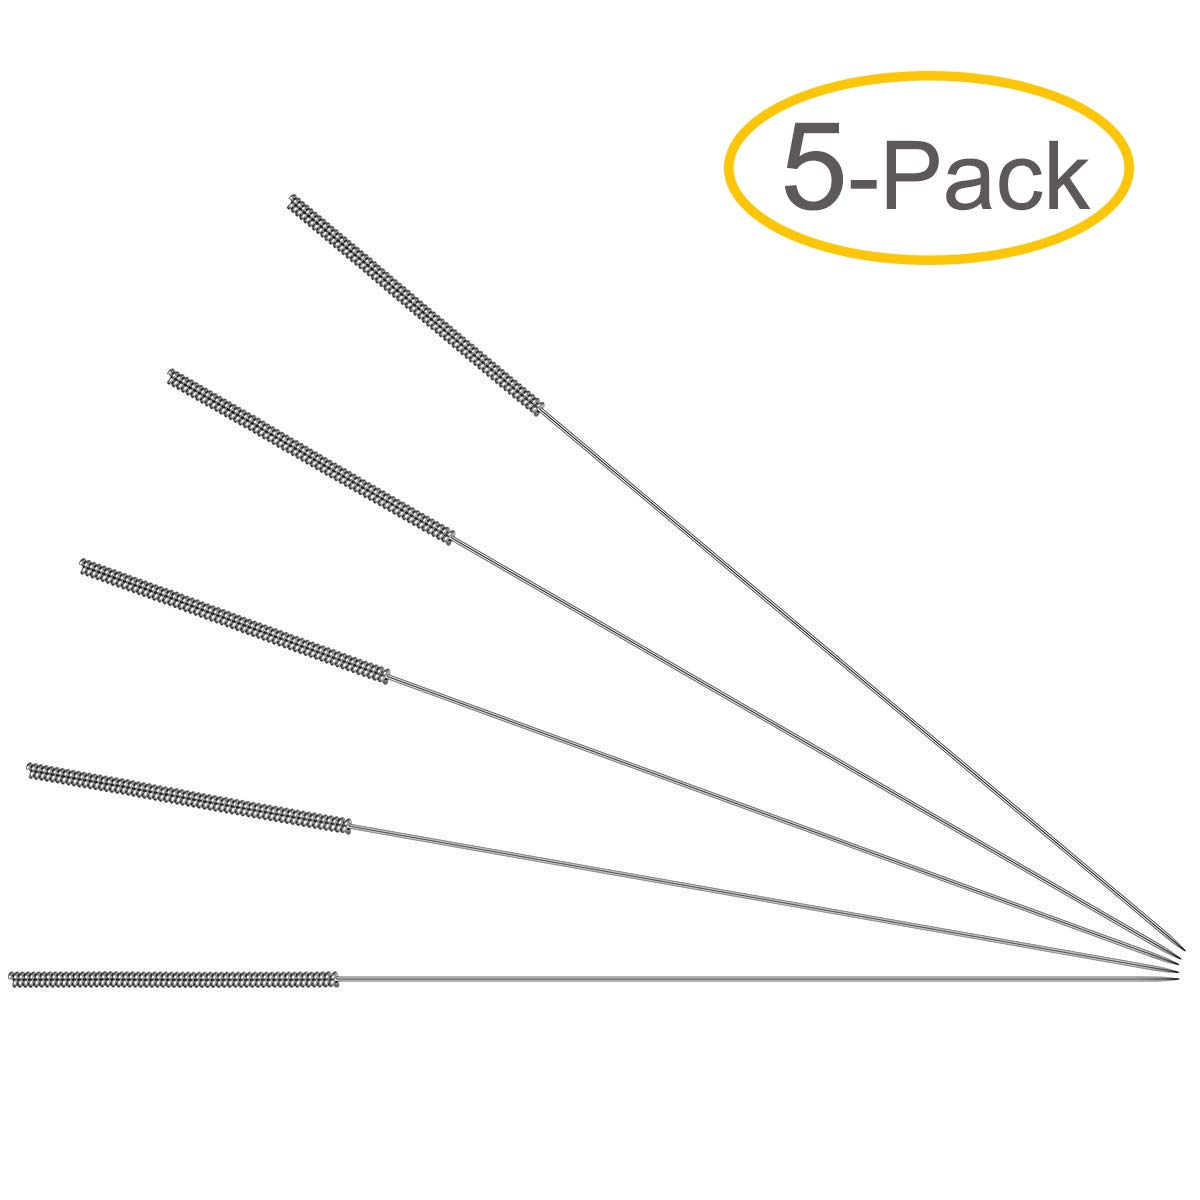 0.4mm Drill Bits - 3D Printer Nozzle Cleaning Kit - Stainless Steel, 4.1' Length (5-Pack)